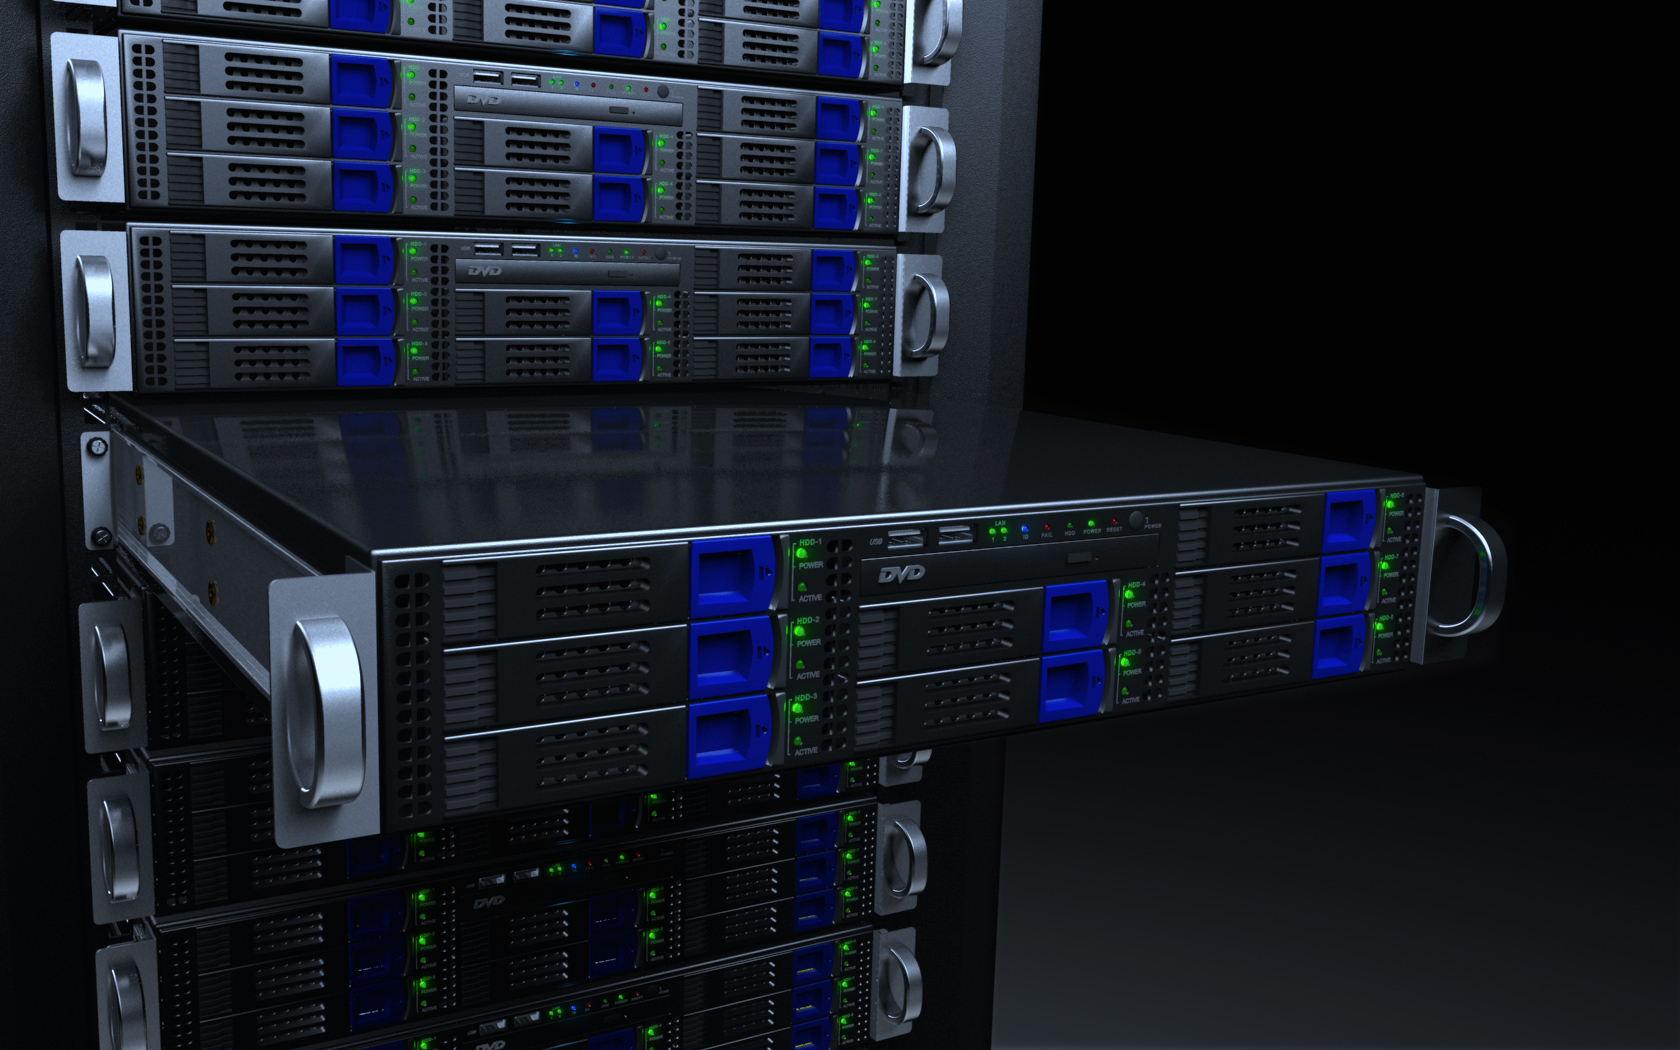 3 benefits of using server racks 3 benefits of